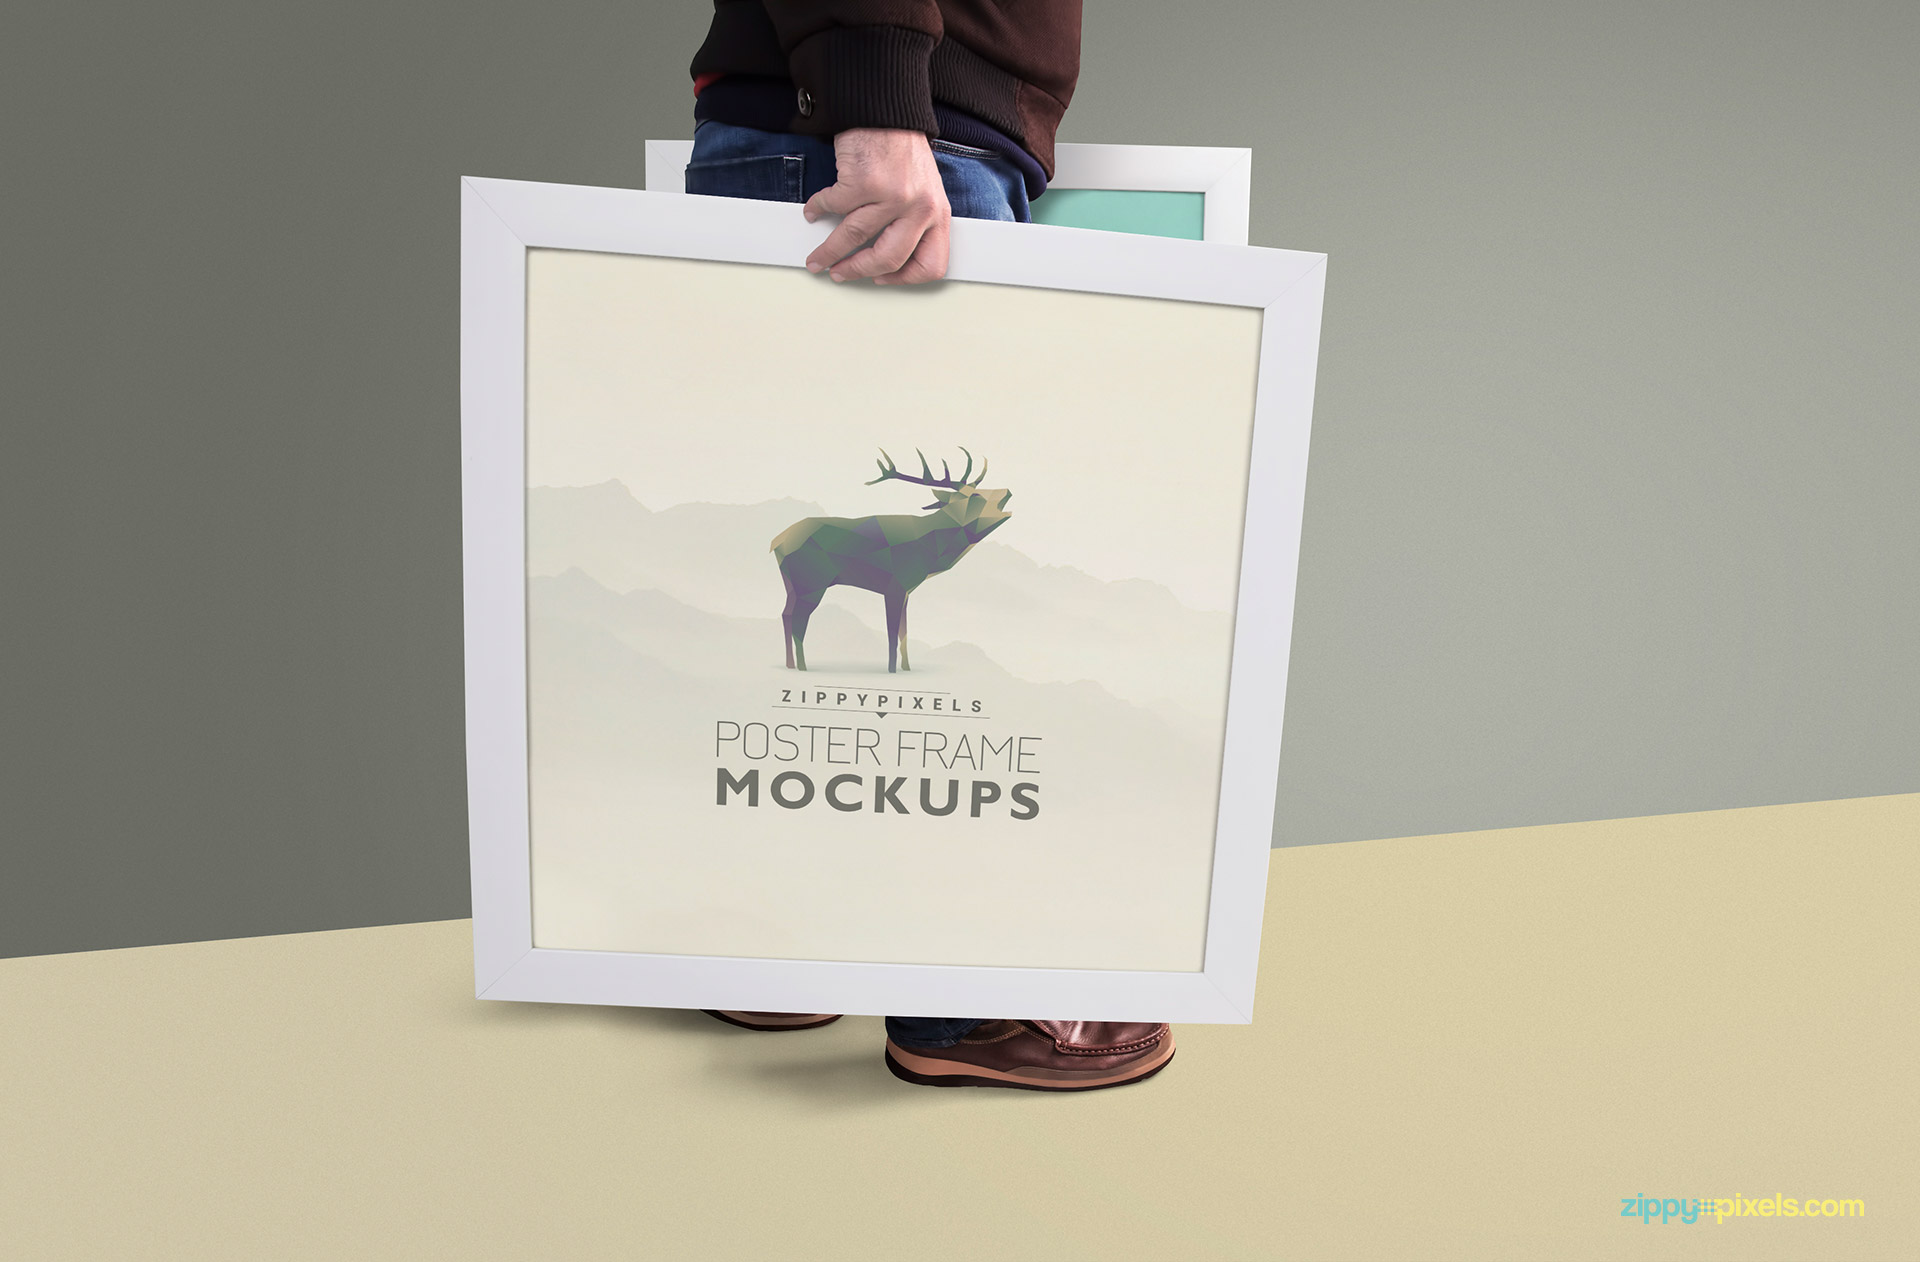 Poster Frame Mockup showing person holding sqaure frame in hands